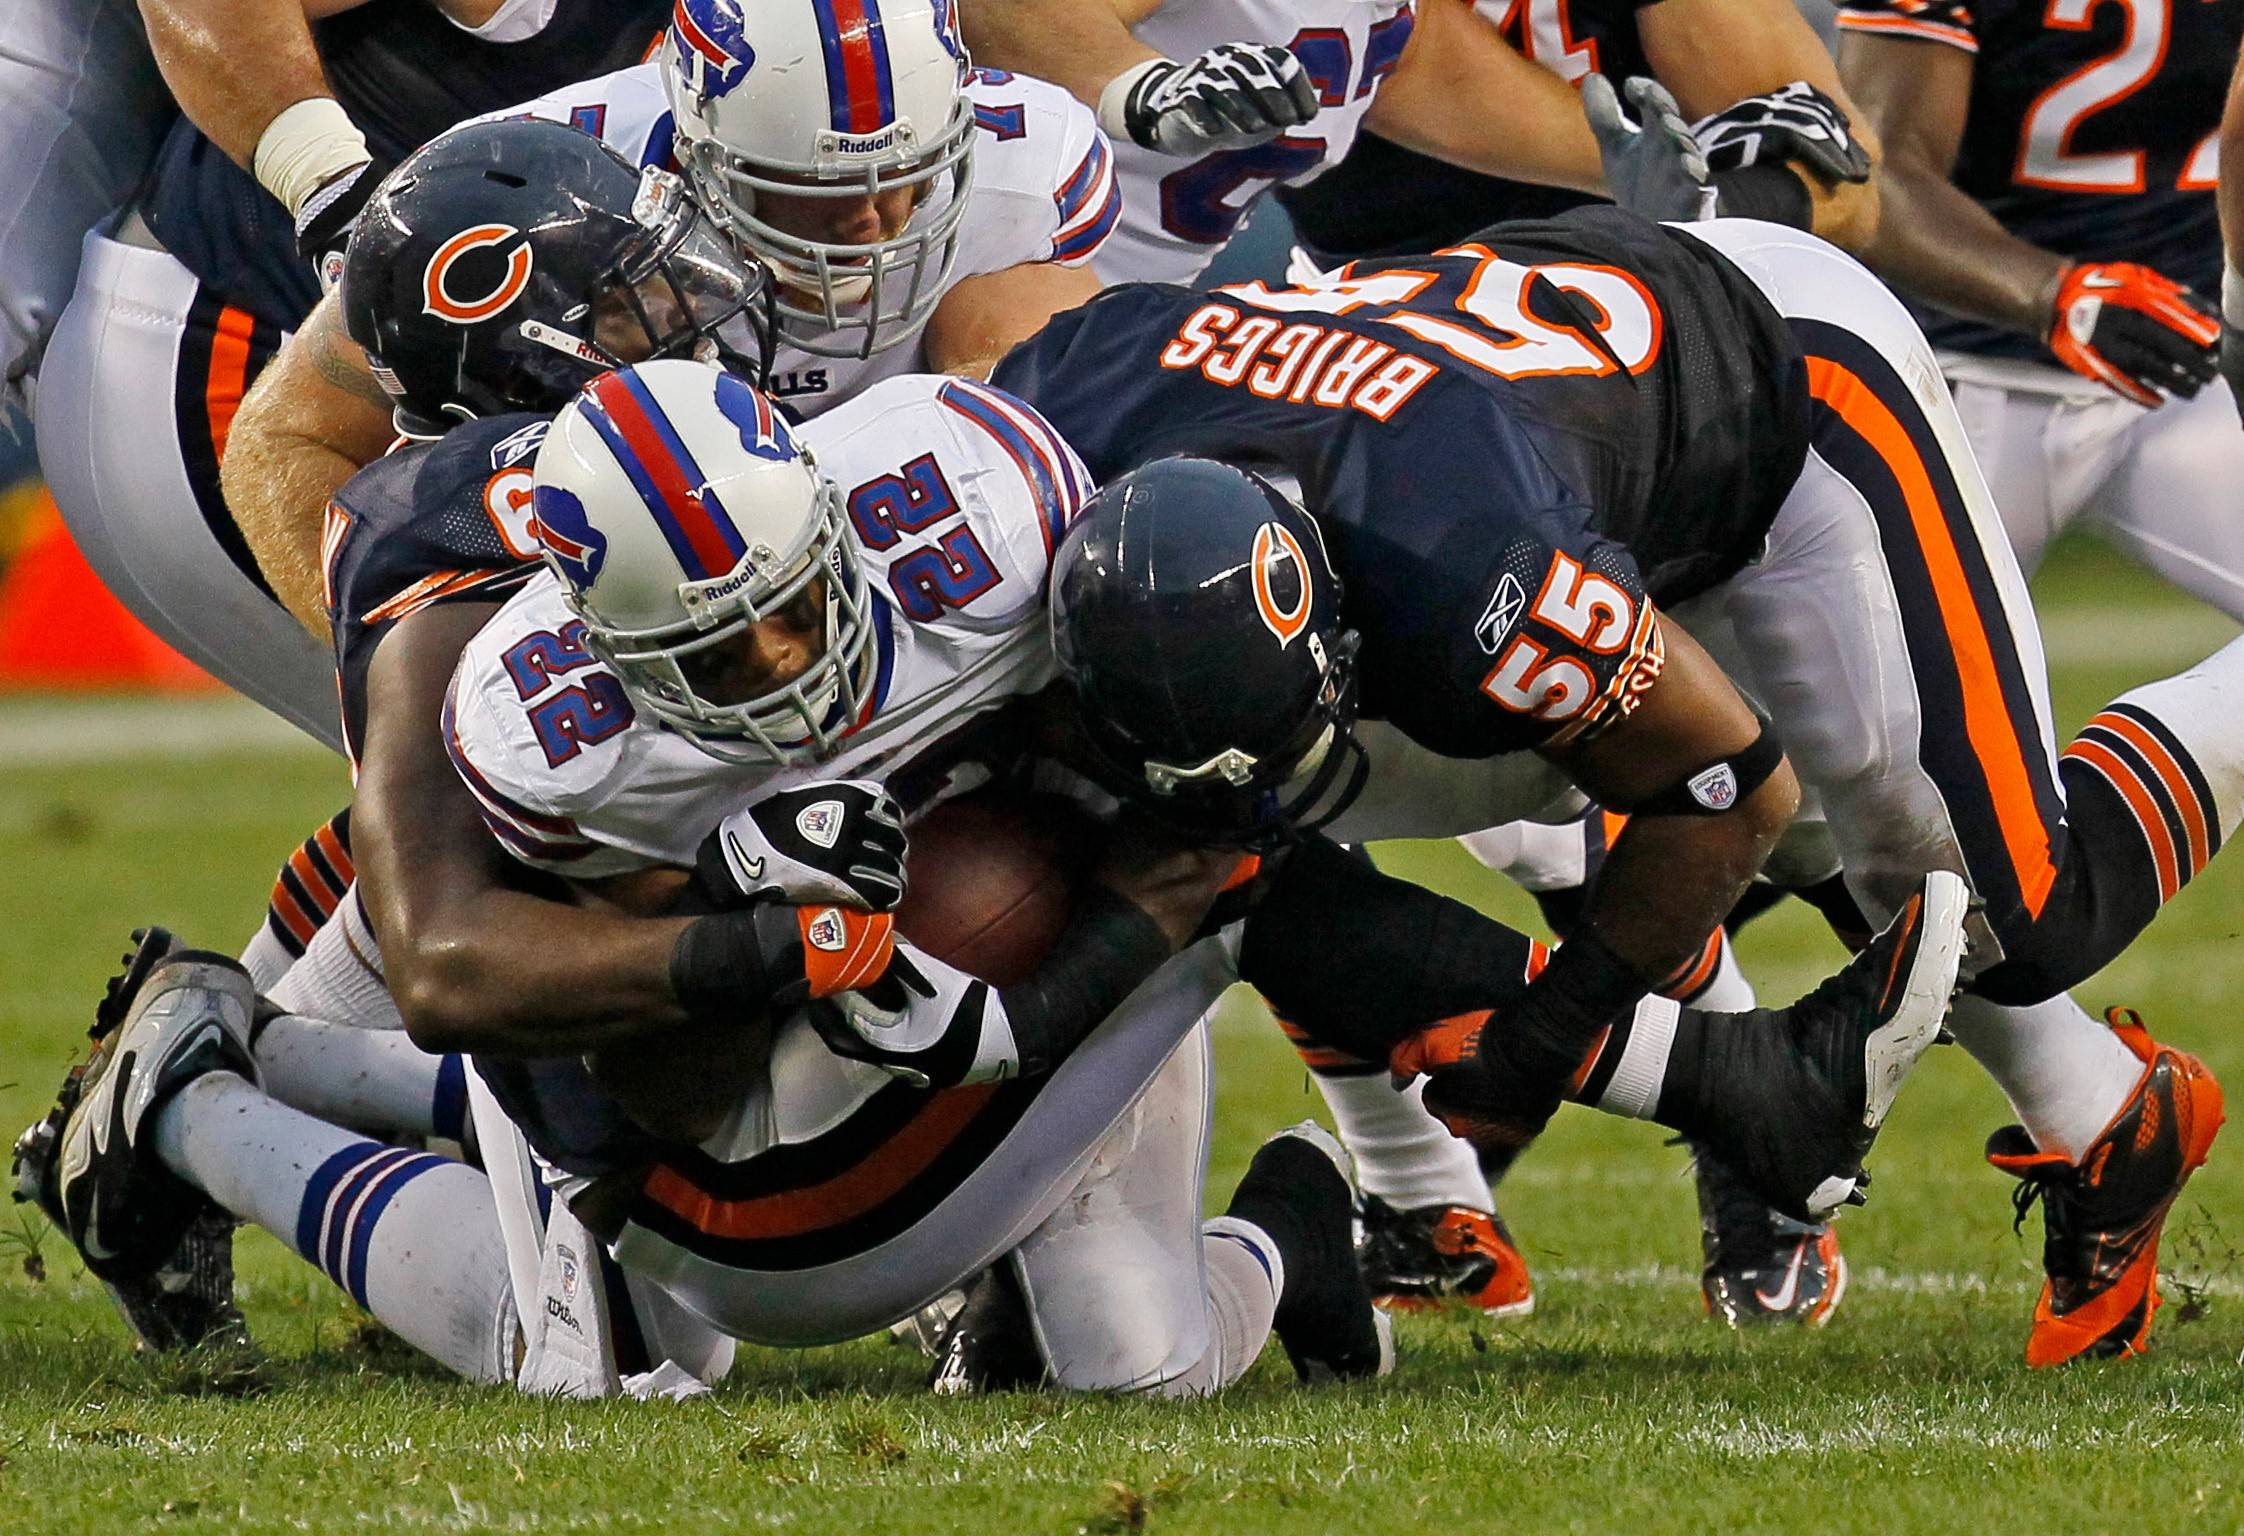 Bears can't let Spiller, Jackson get loose